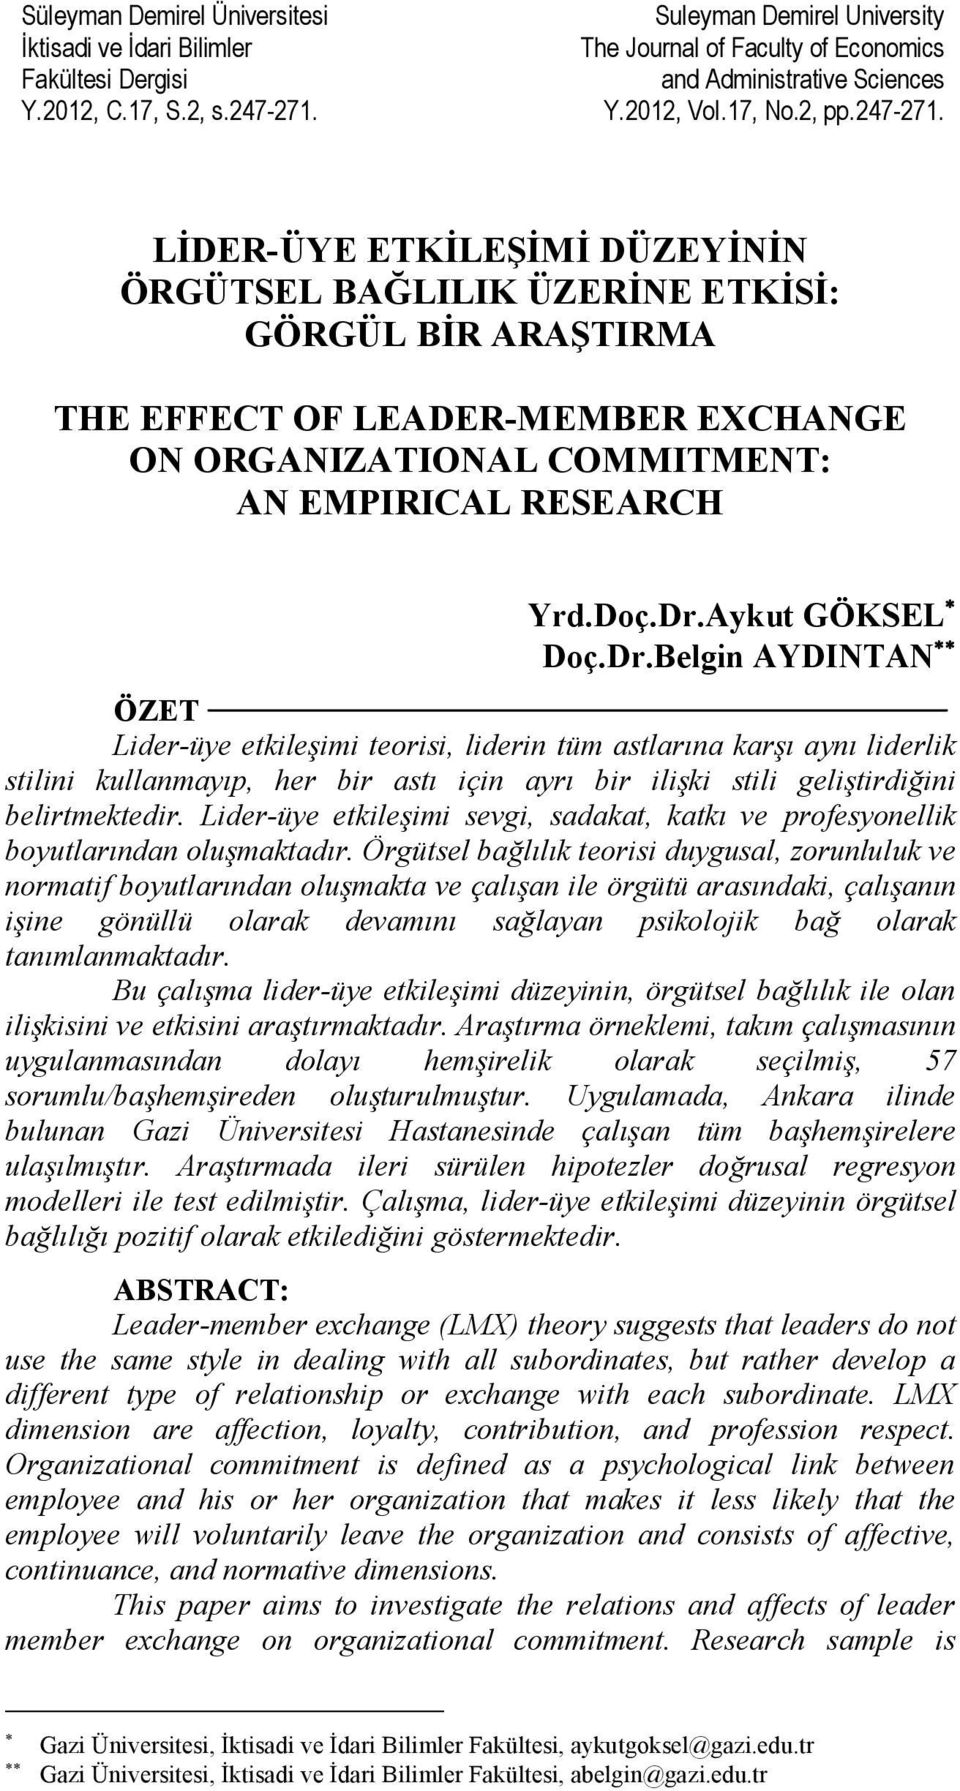 LİDER-ÜYE ETKİLEŞİMİ DÜZEYİNİN ÖRGÜTSEL BAĞLILIK ÜZERİNE ETKİSİ: GÖRGÜL BİR ARAŞTIRMA THE EFFECT OF LEADER-MEMBER EXCHANGE ON ORGANIZATIONAL COMMITMENT: AN EMPIRICAL RESEARCH Yrd.Doç.Dr.